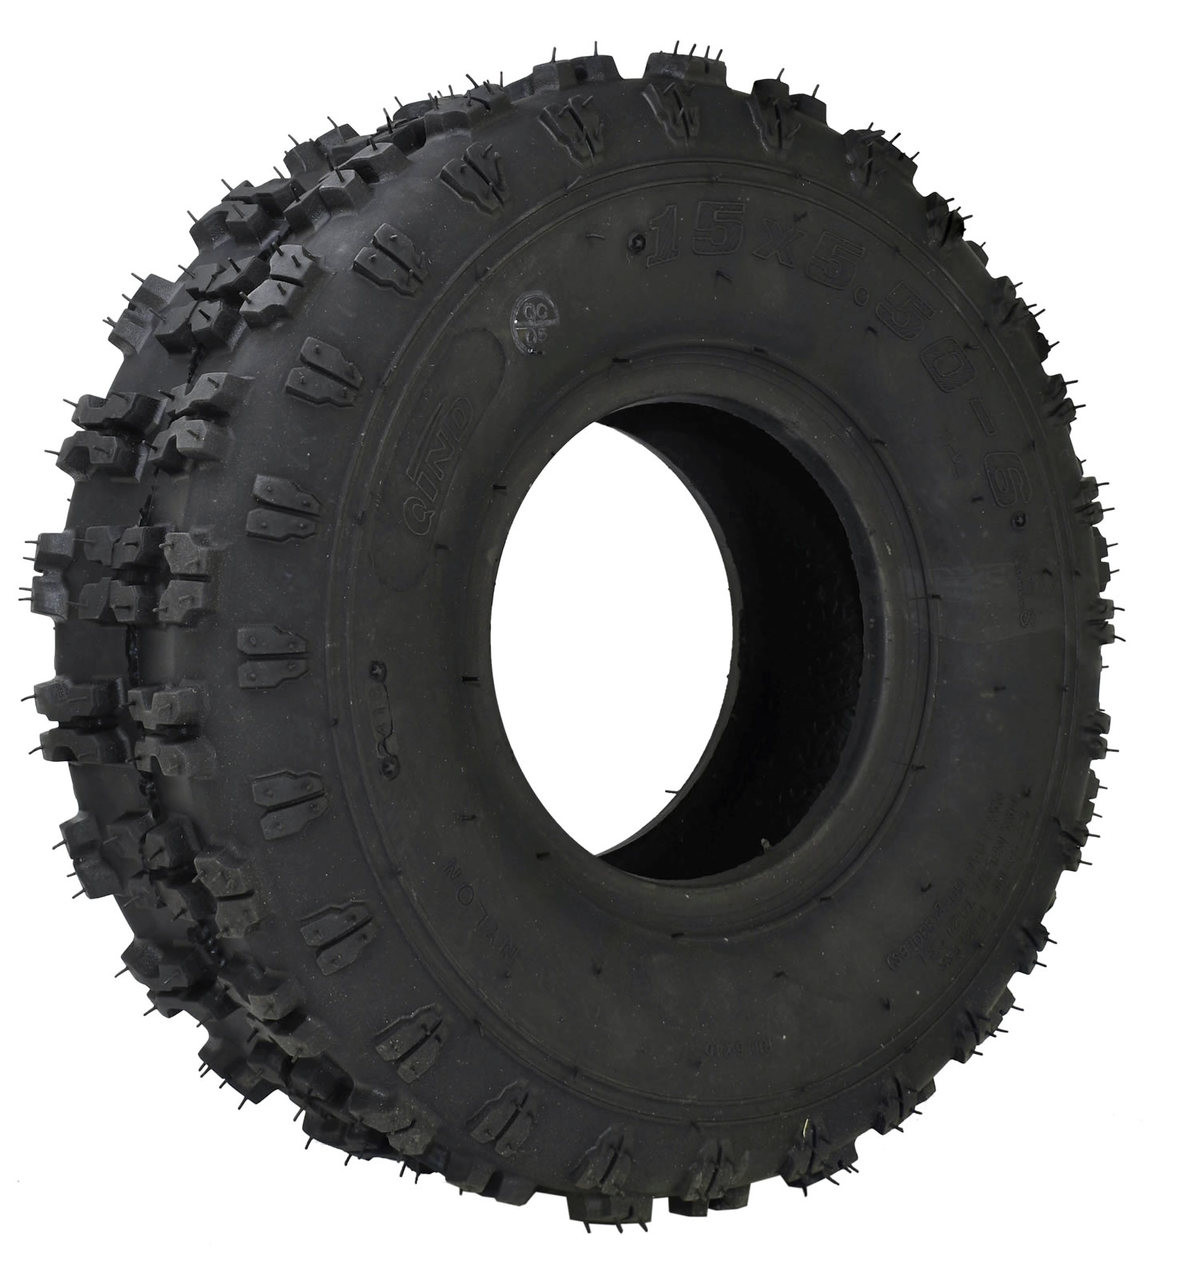 15 x 5.50-6 Cleat tire